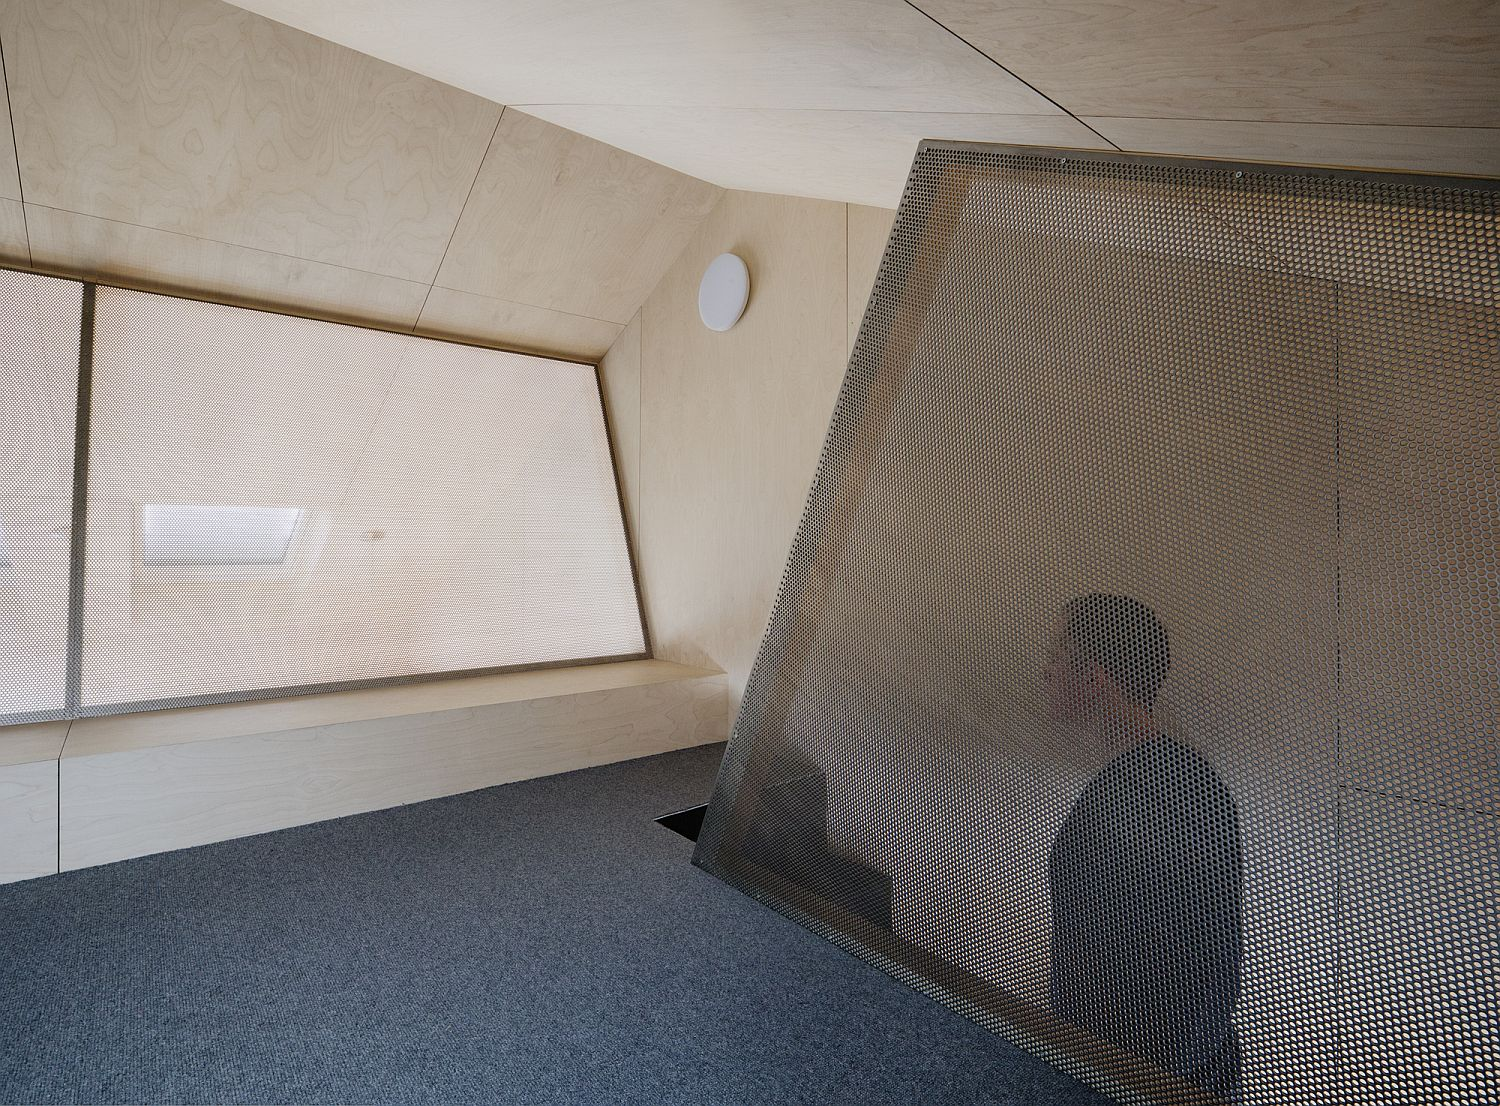 Half-transparent perforated steel panels used for the attic level